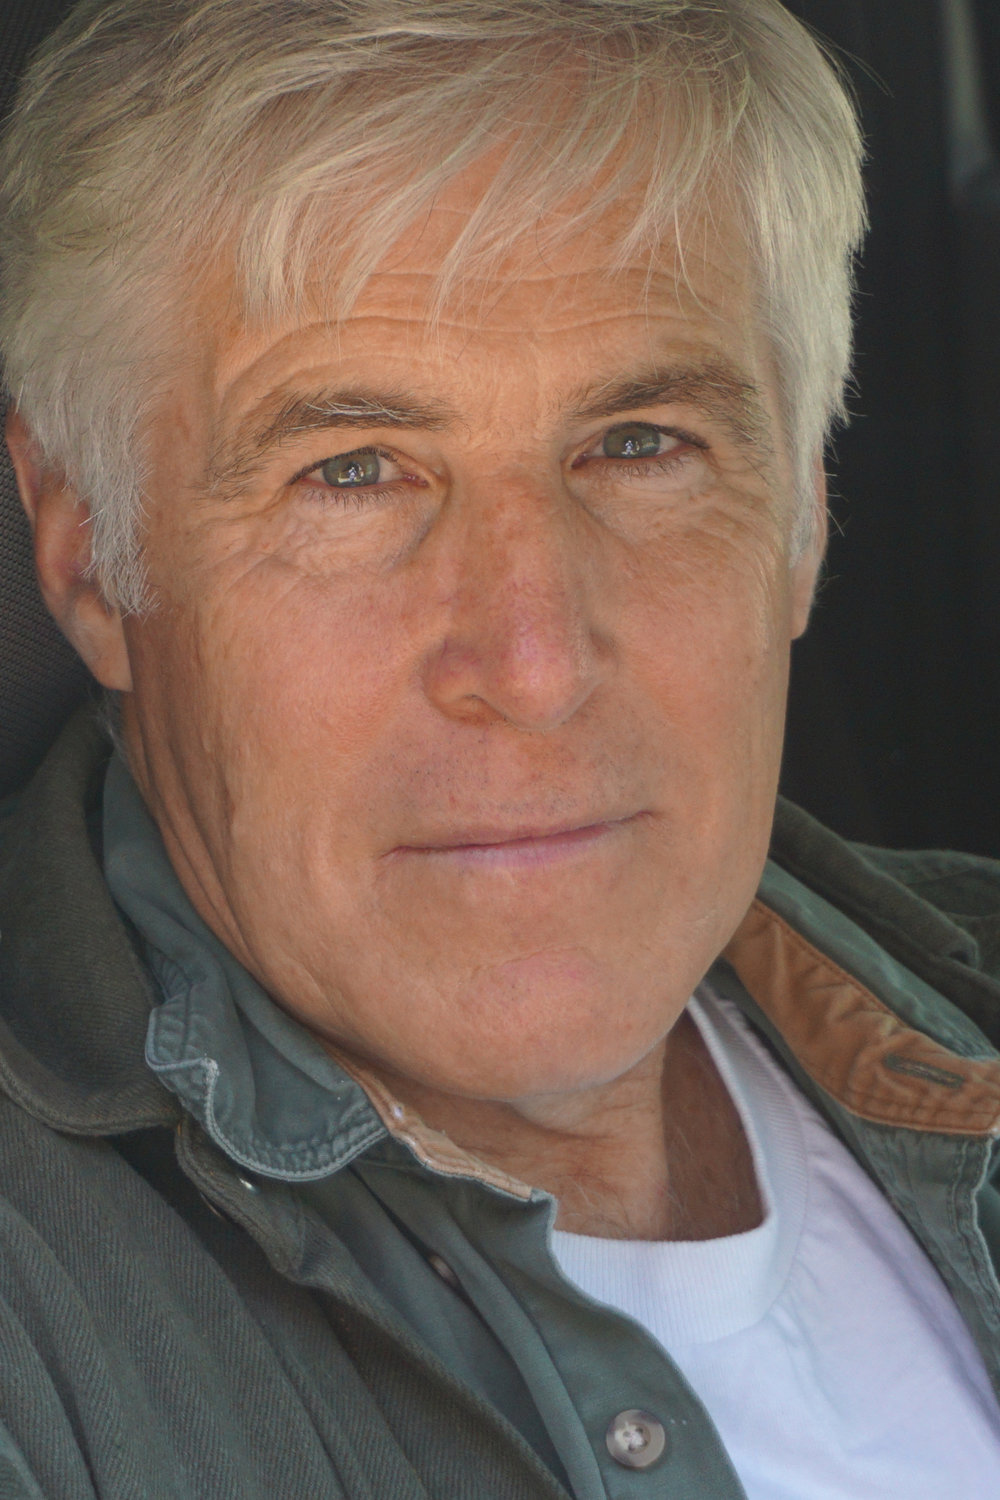 Tony Cronin has performed on stage, on television, and on the big screen.